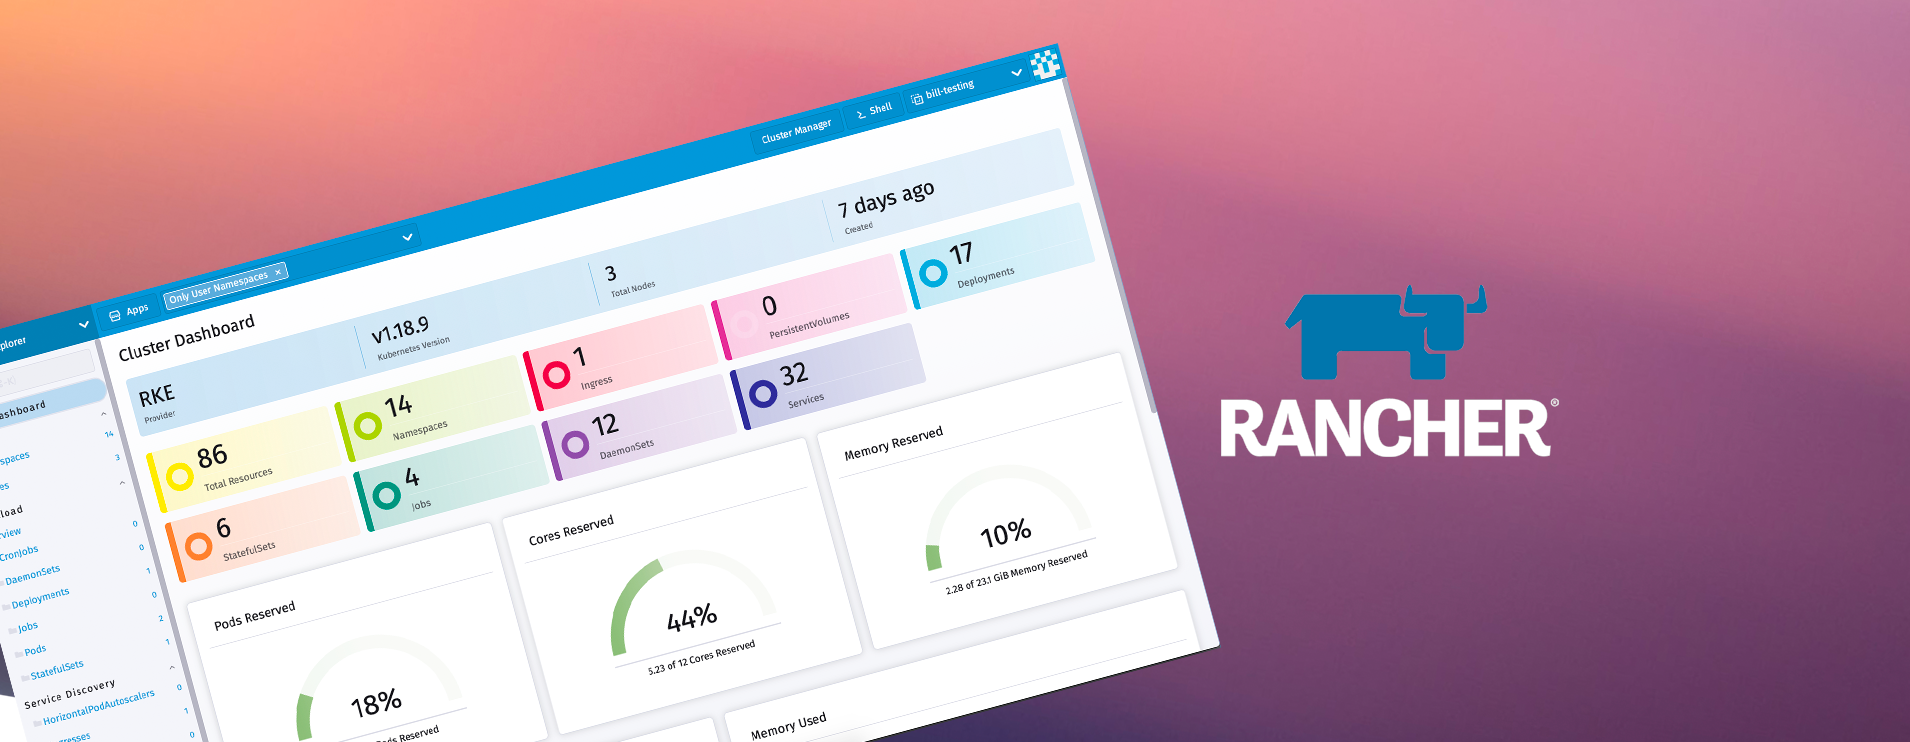 Deploying Rancher to manage a Kubernetes cluster